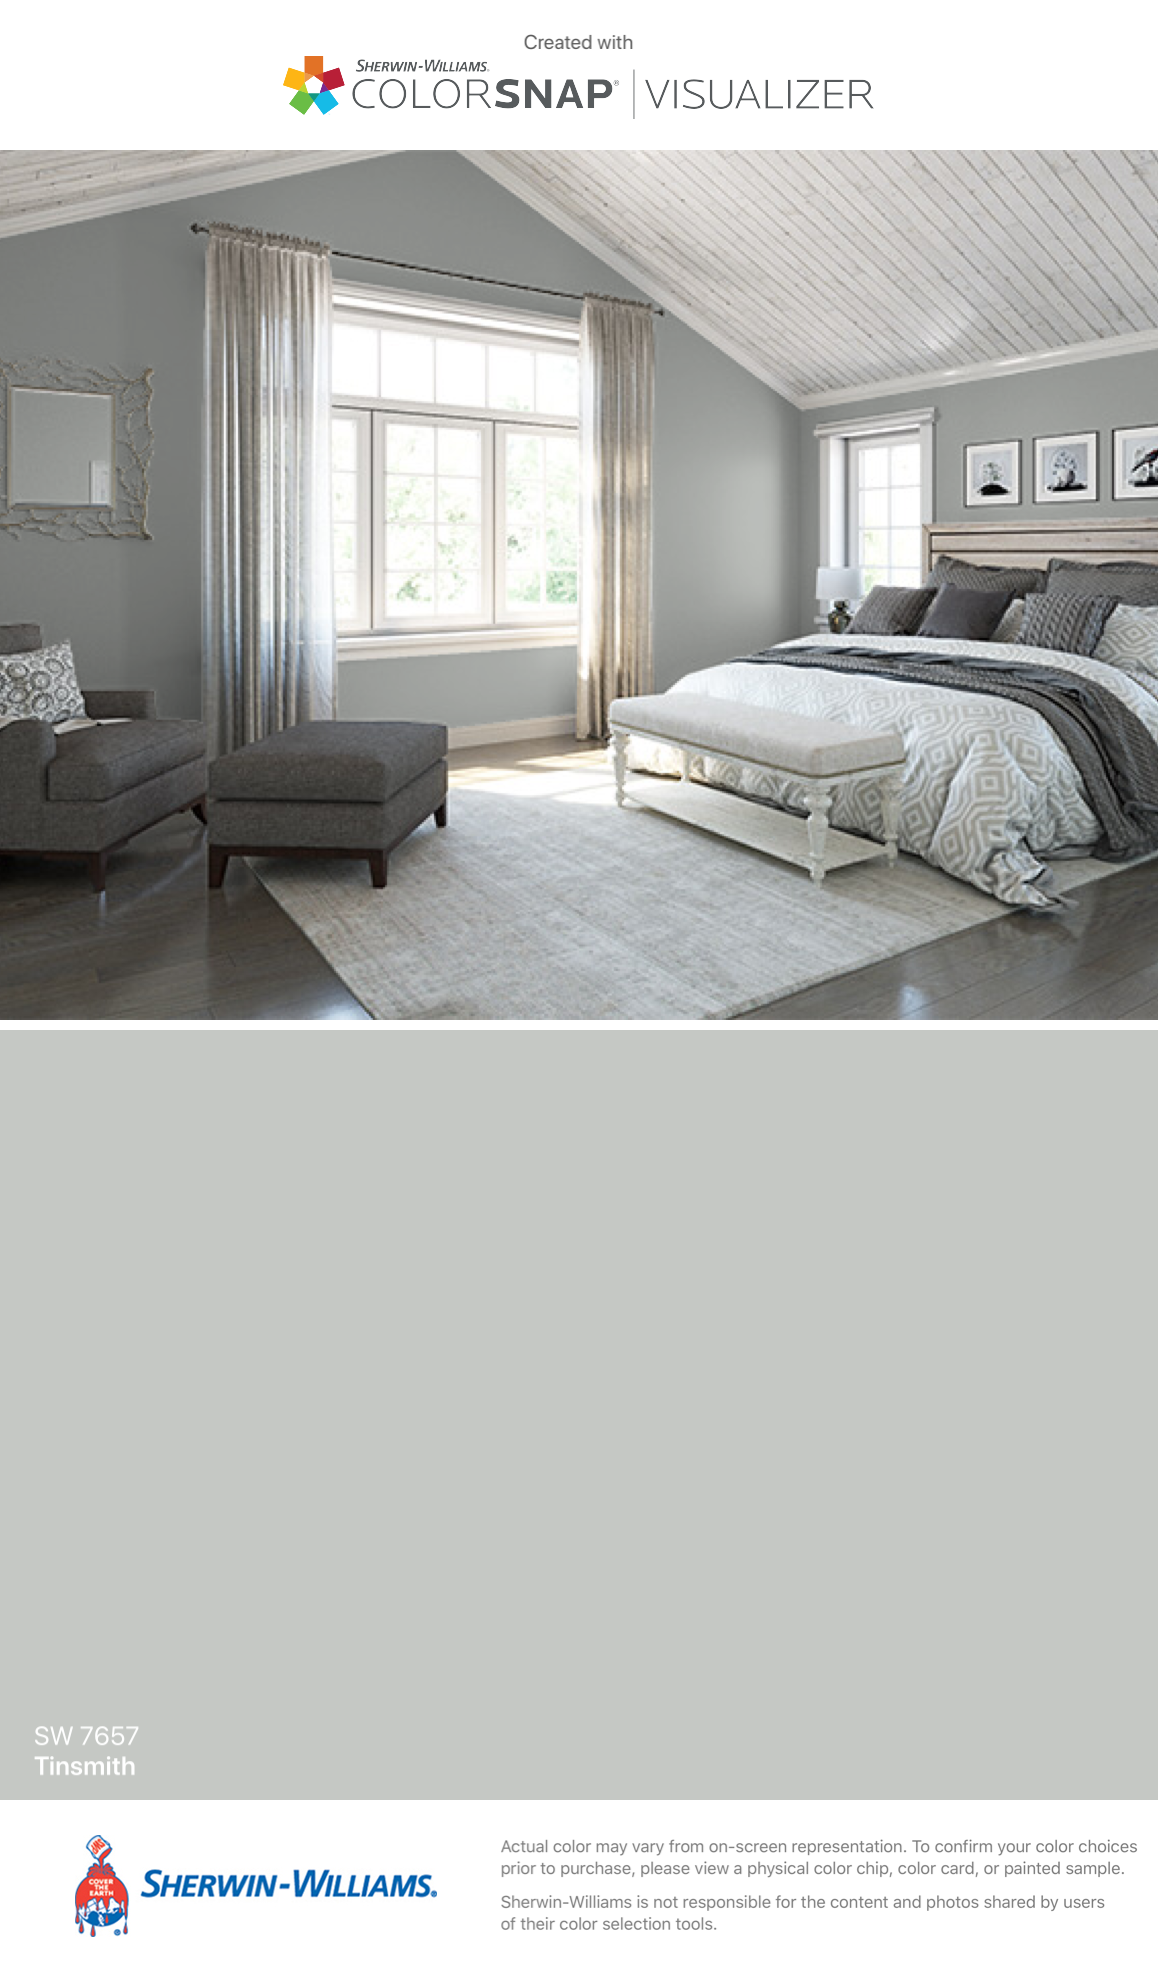 I Found This Color With Colorsnap Visualizer For Iphone By Sherwin Williams Tinsmith Sw 7657 Bedroom Paint Colors Home Master Bedroom Paint